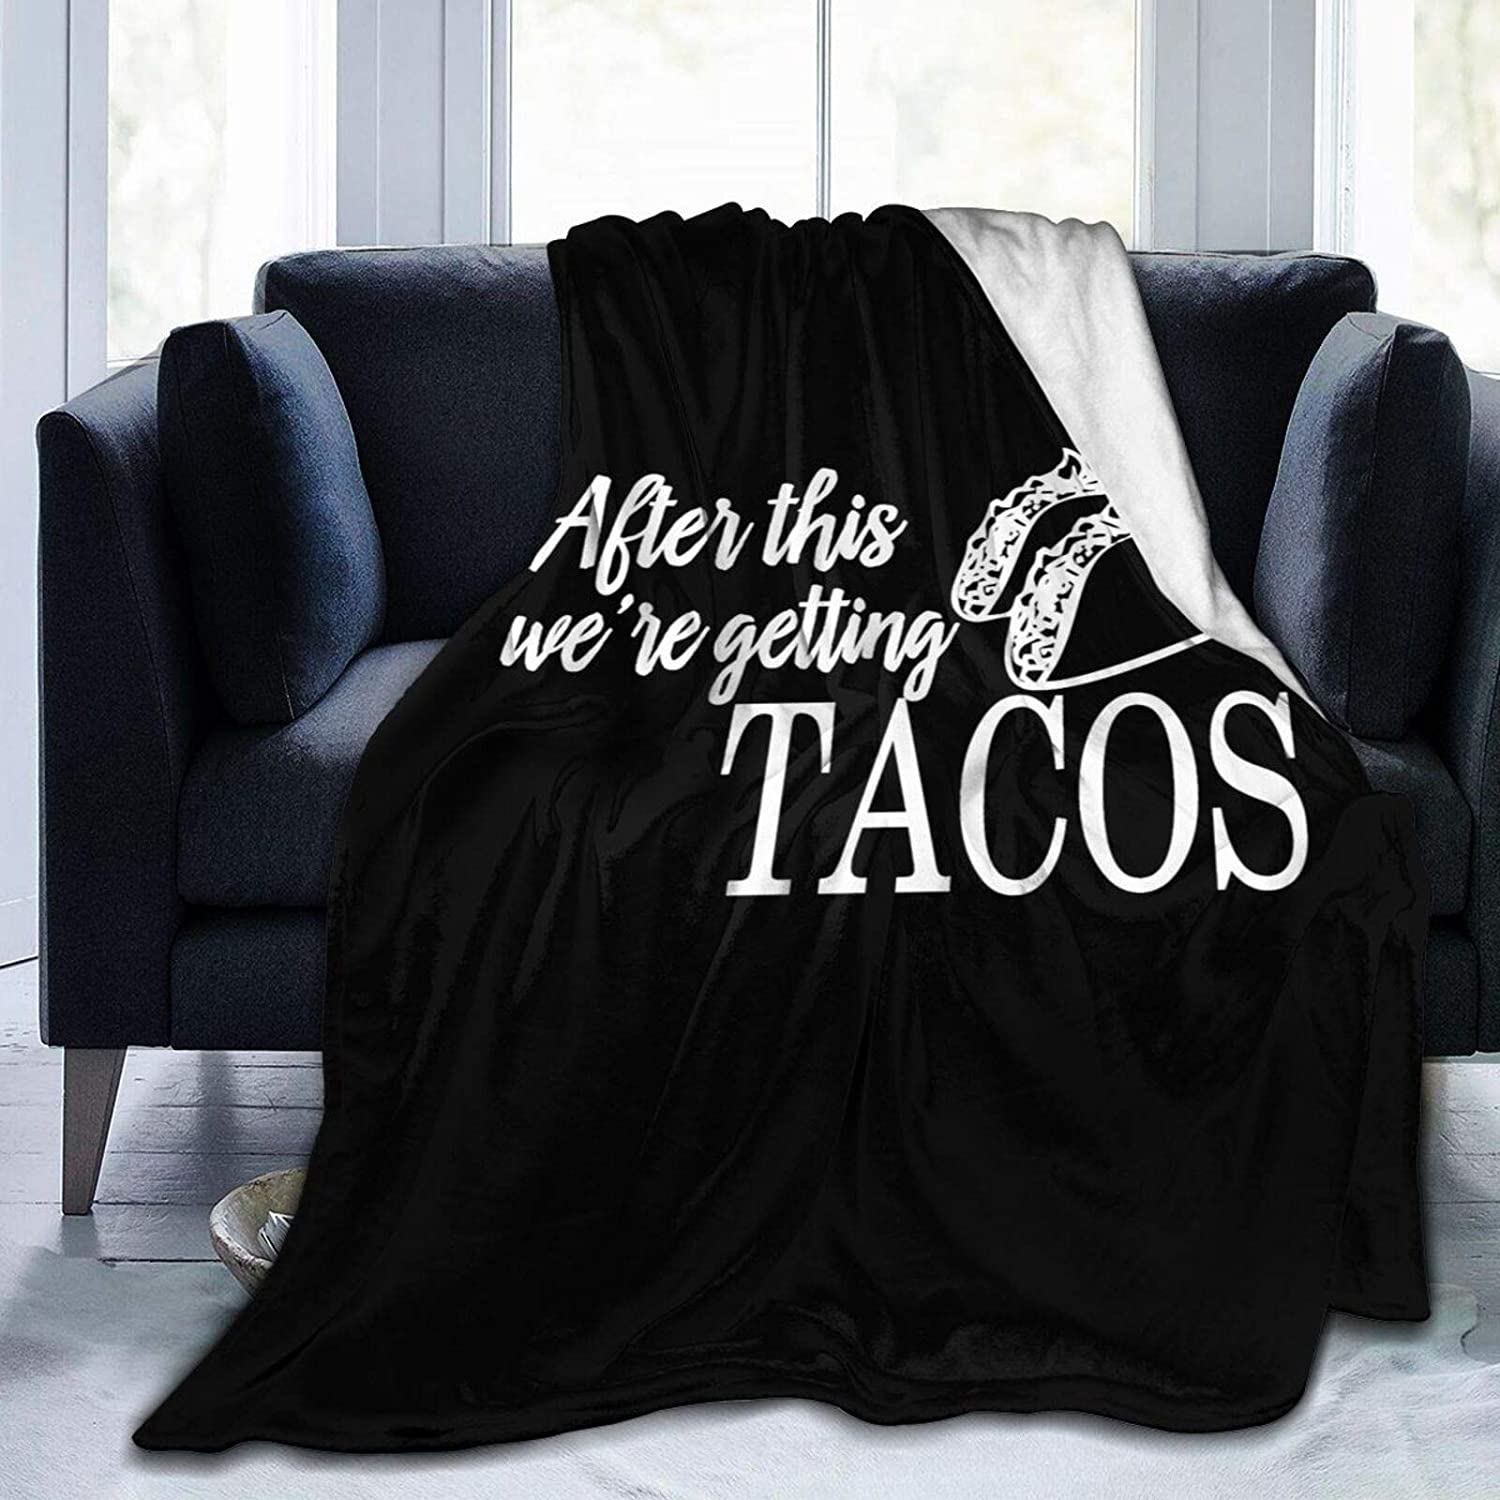 We're Special price Getting Tacos After This Soft and Limited price Supe Comfortable Blanket